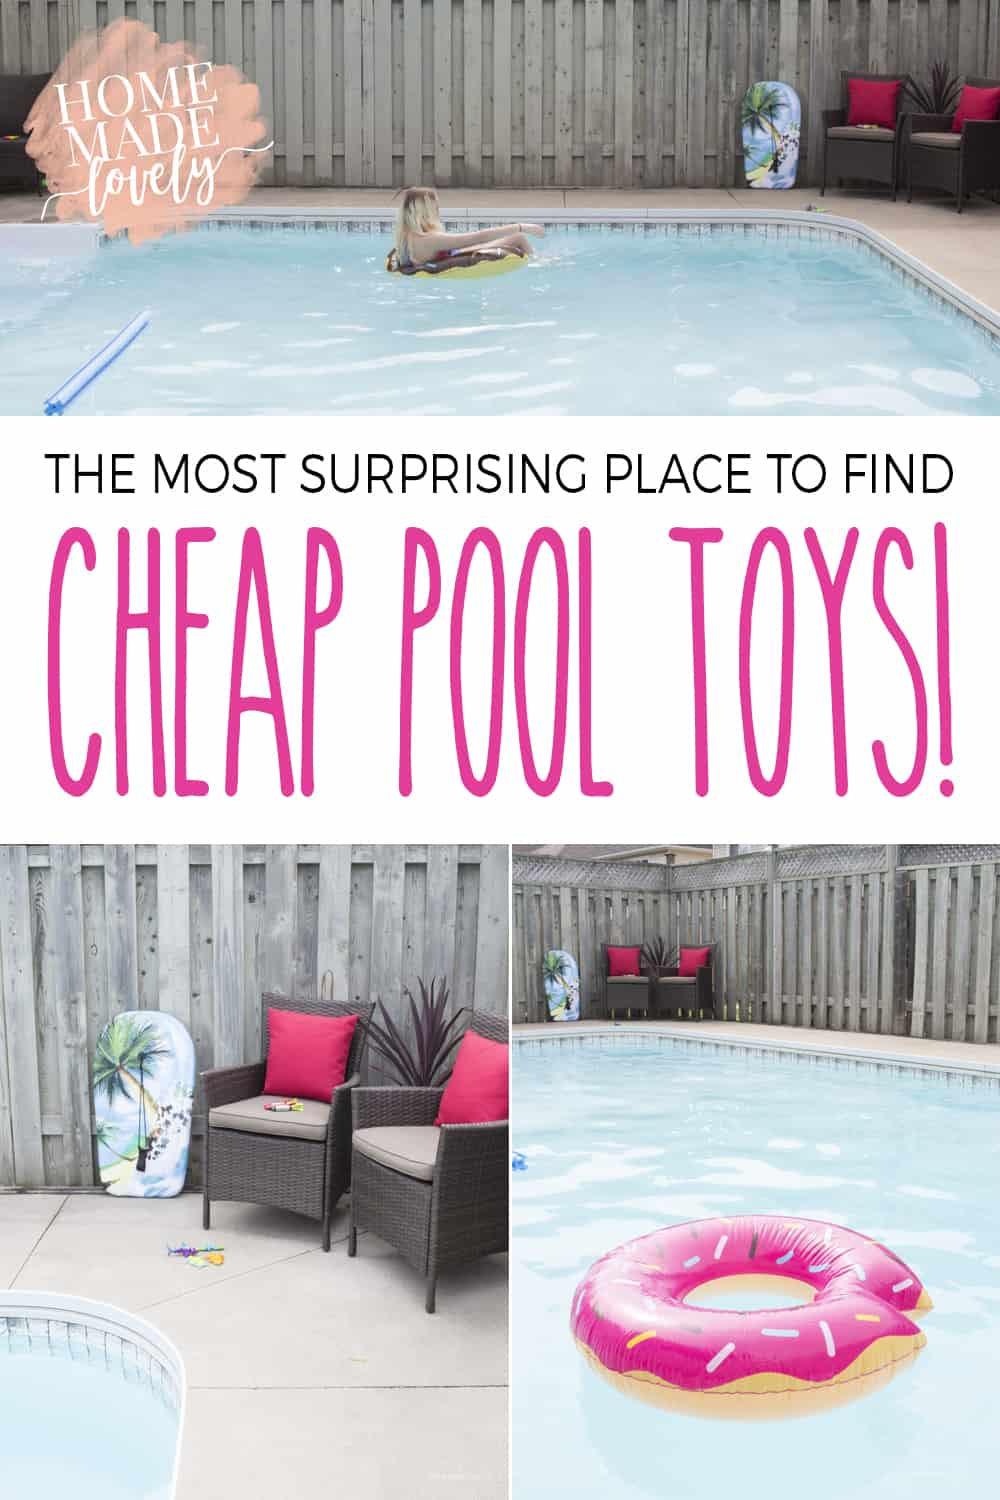 Buying new things for a pool can be expensive! But you'll never guess where we got ours! Here's the most surprising place to find pool toys!